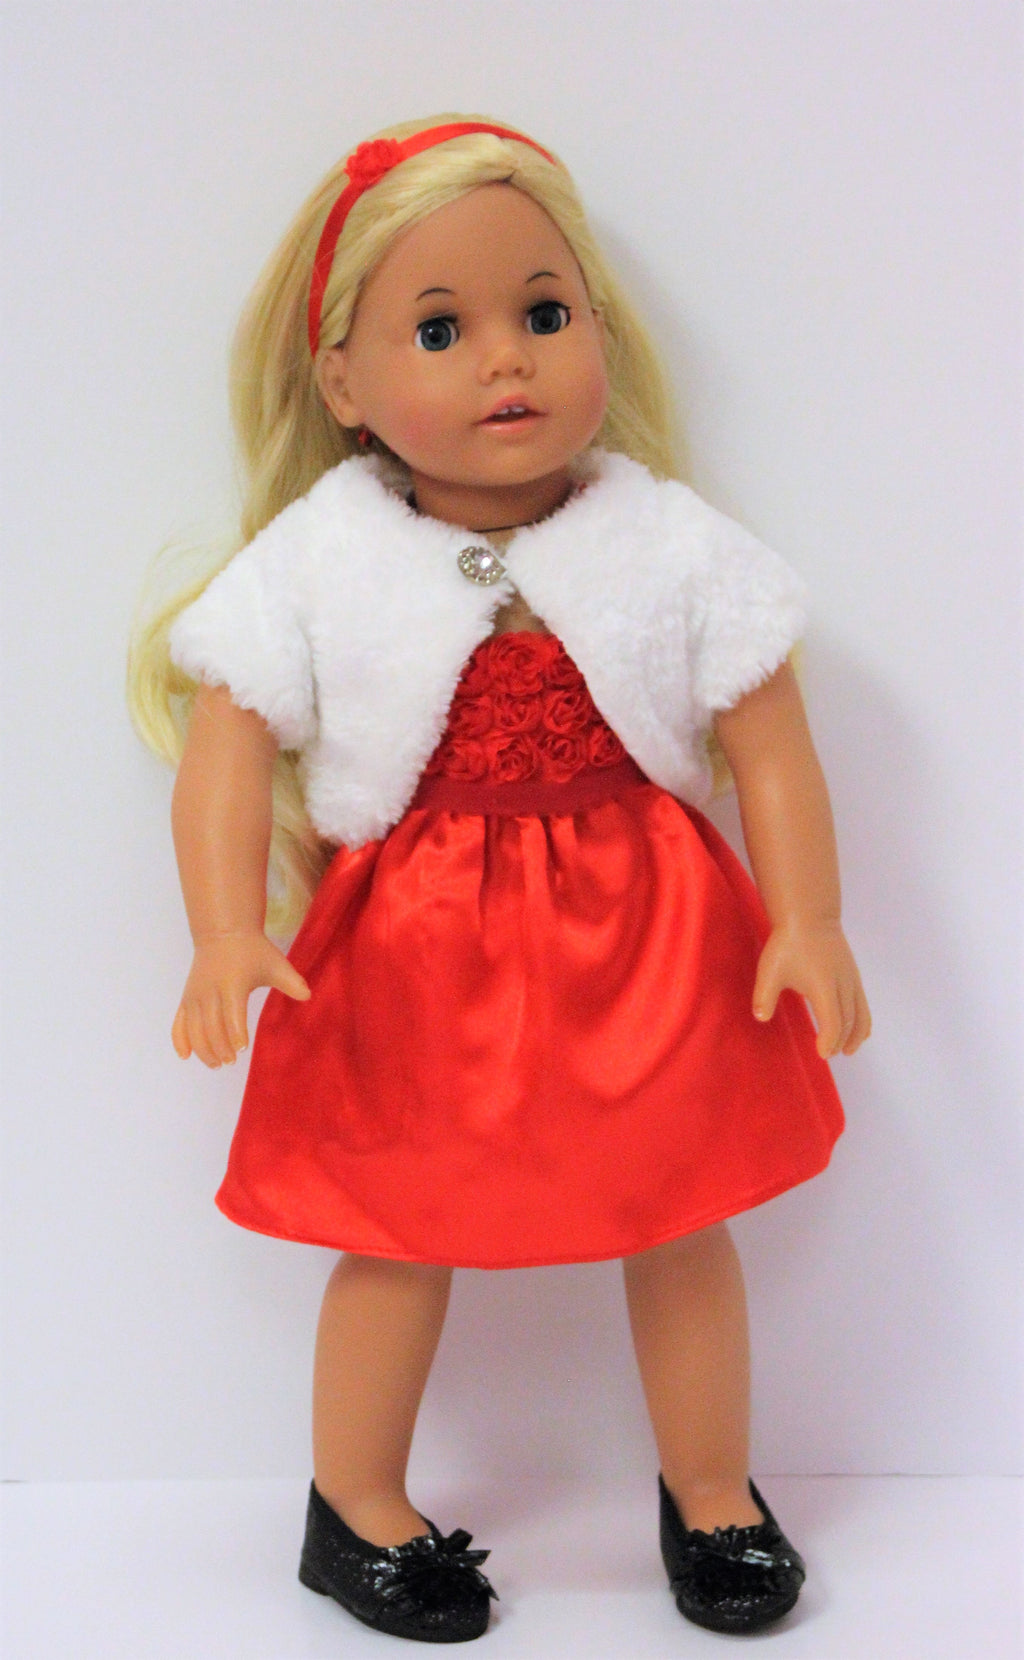 Red dress with white shrug